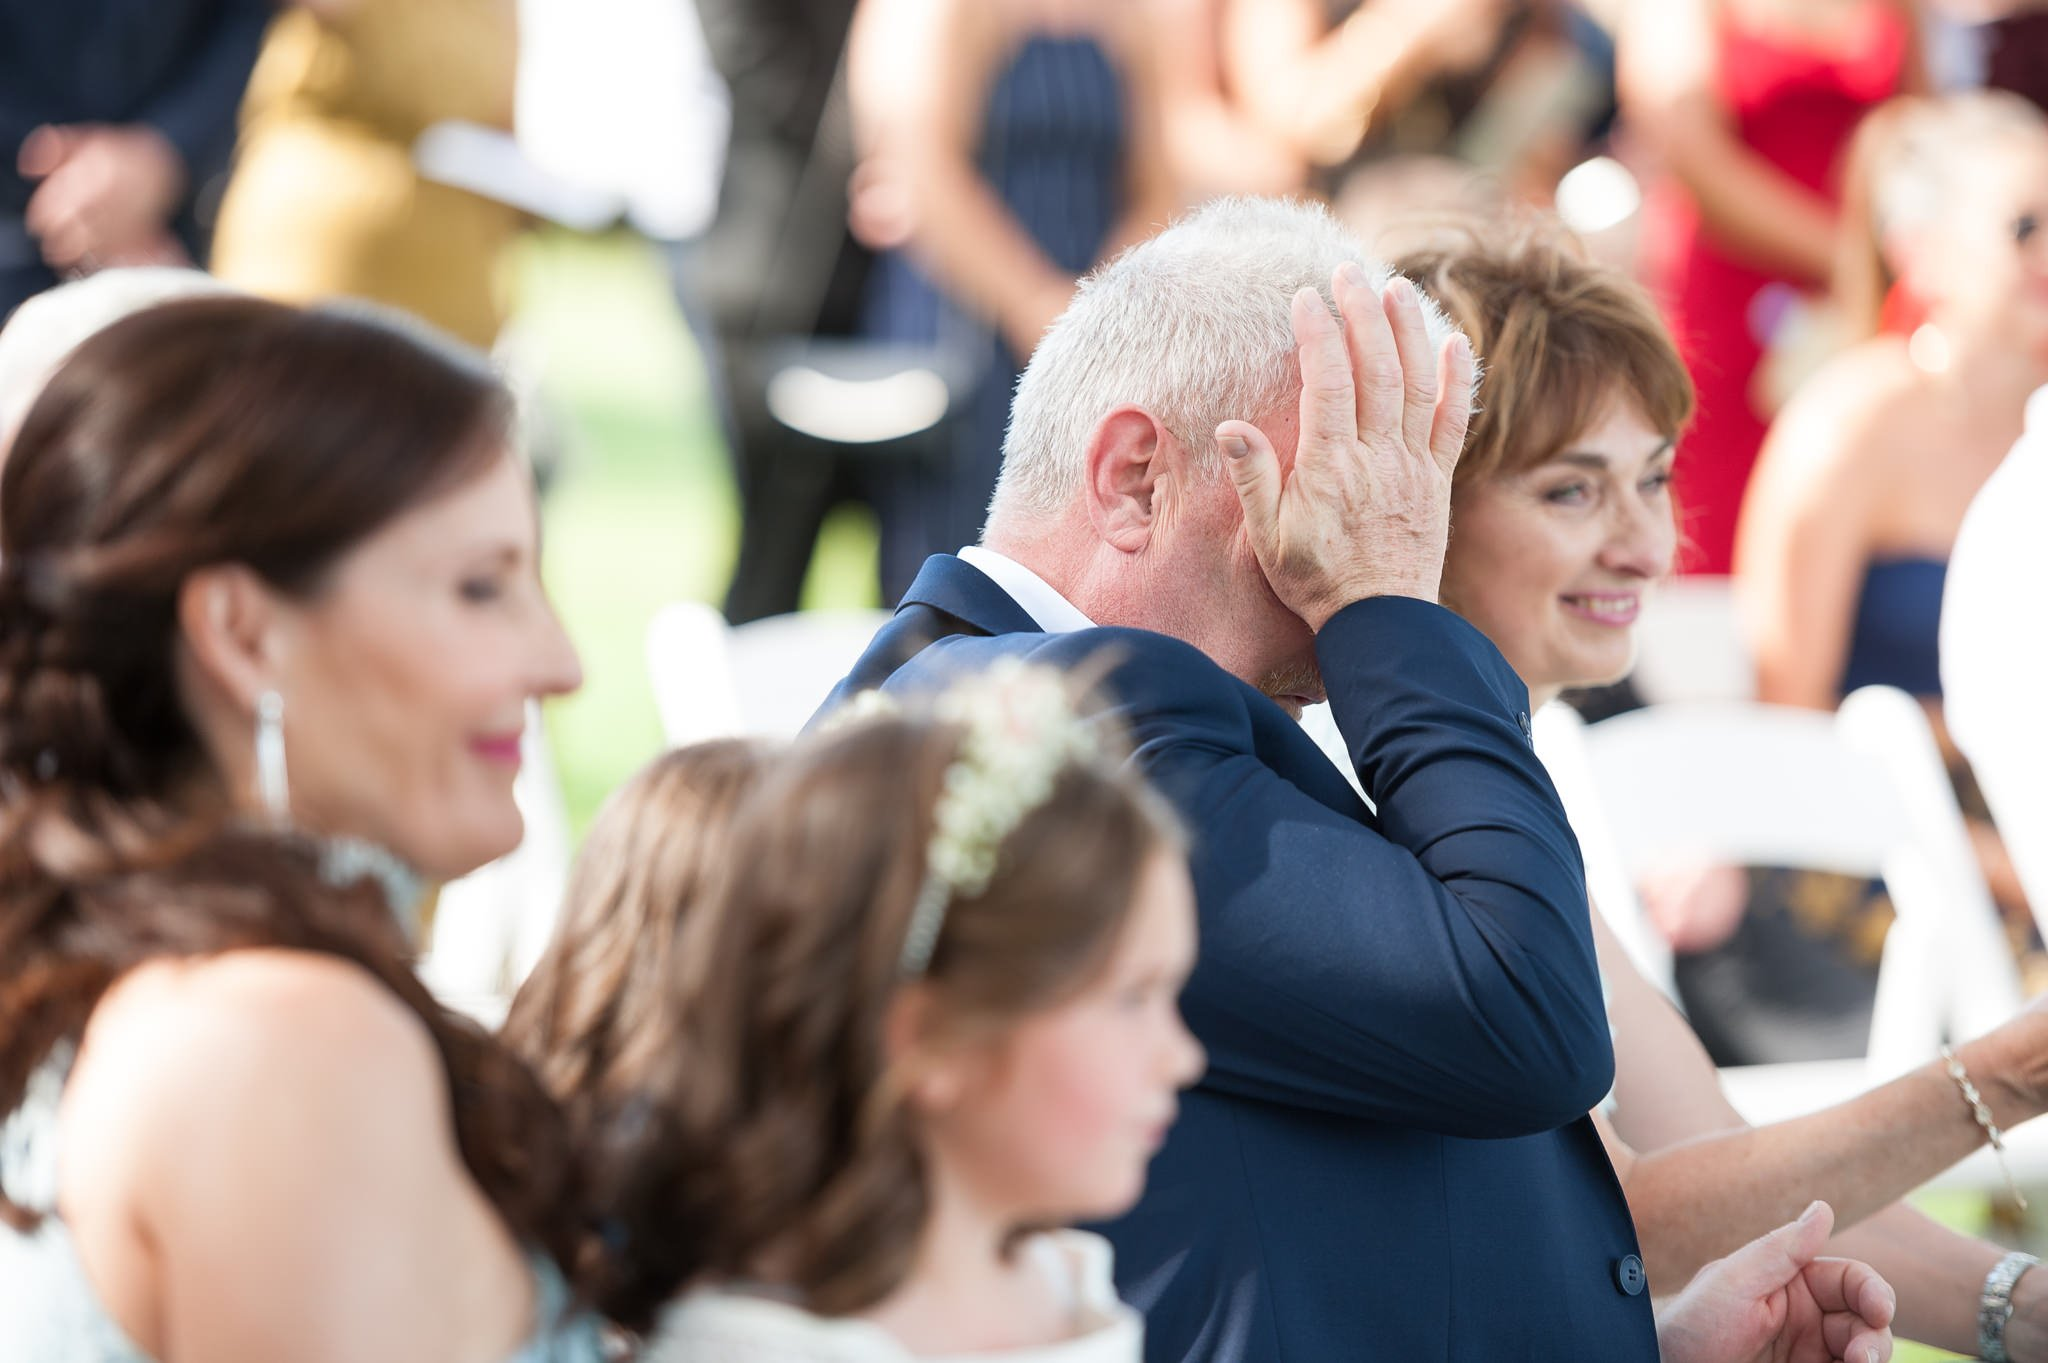 emotional dad at wedding ceremony